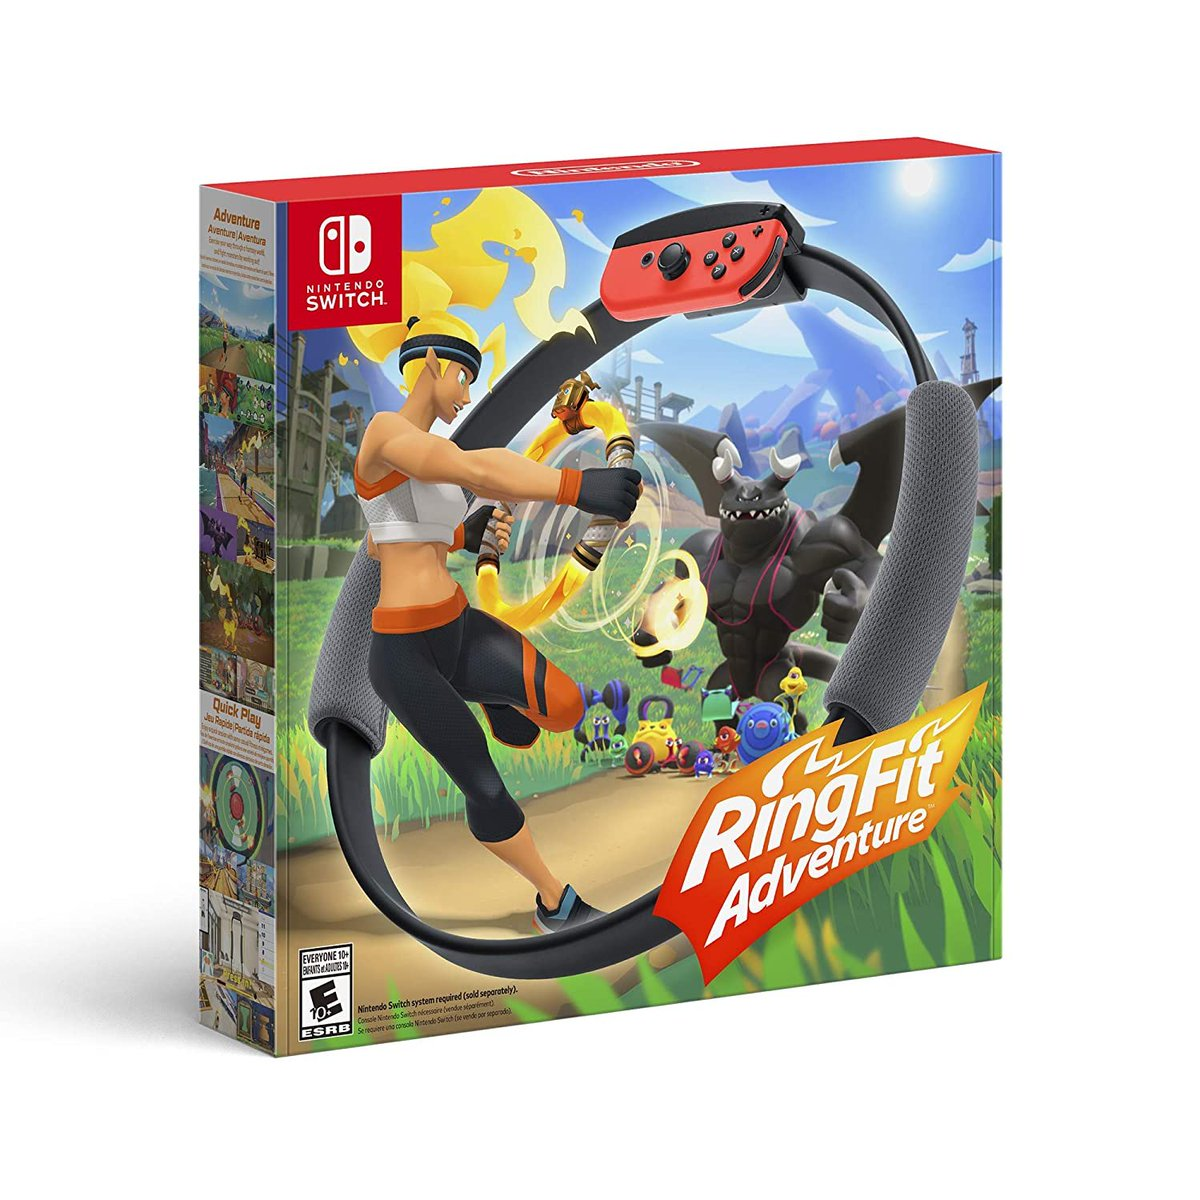 10:509871 Just saw this on Amazon: Ring Fit Adventure - Nintendo Switch by Nintendo of America for $278.95 https://amzn.to/354dz8F   @amazonさんからpic.twitter.com/OcKLMVa01t